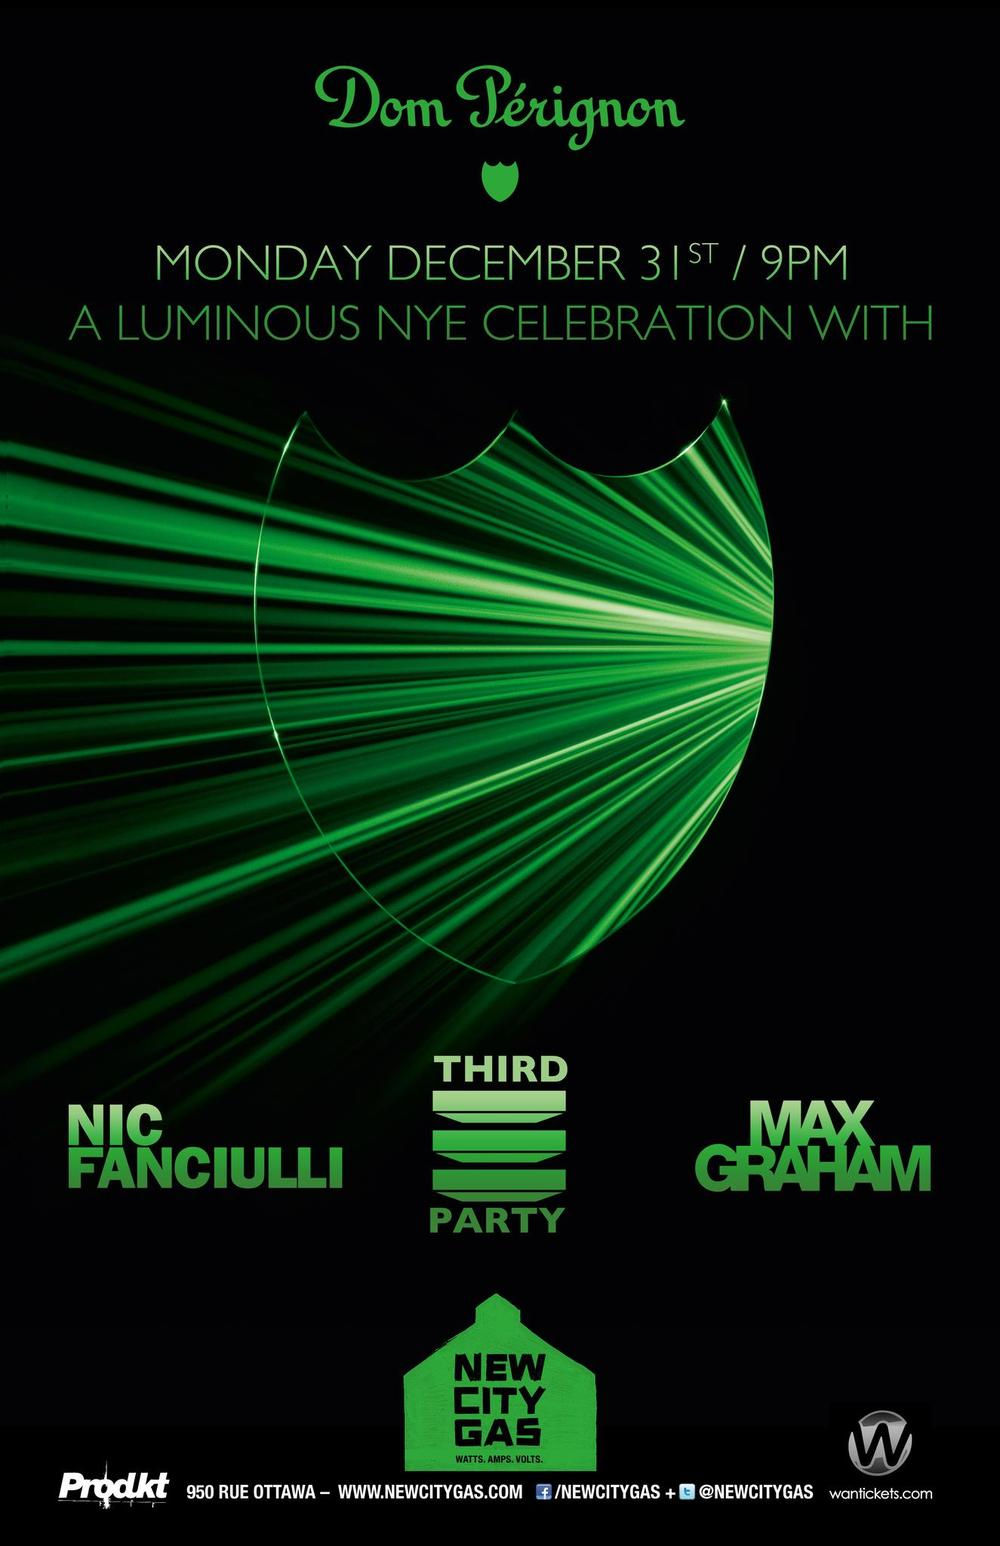 Nic Fanciulli, Third Party, Max Graham new city gas montreal